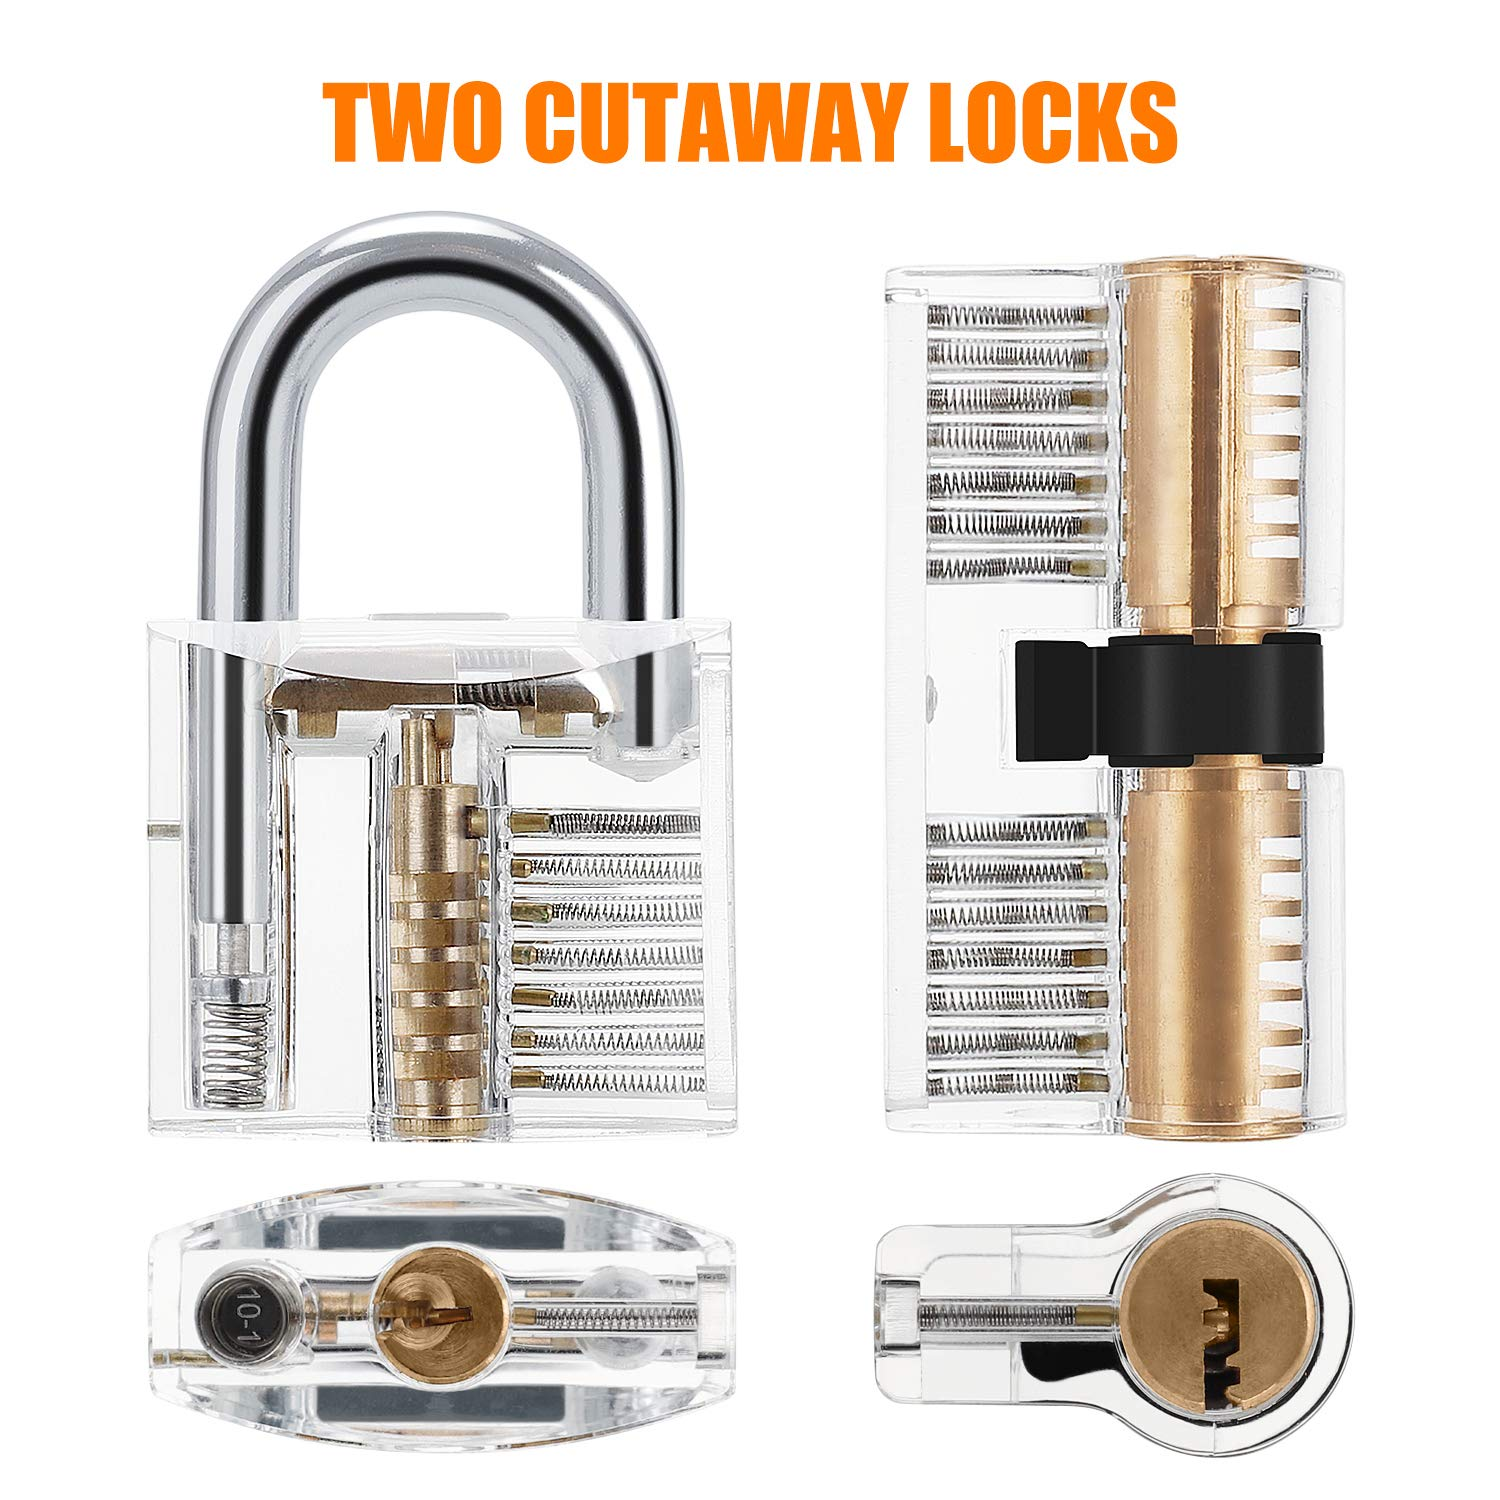 Kuject 2-in-1 Lock Pick Set, Lock Picking Training Set for Beginners, Include Transparent Cutaway Pin Tumbler Practice Padlock, Hook Pick, Dimple Lock, Dimple Pick, Tension Wrench